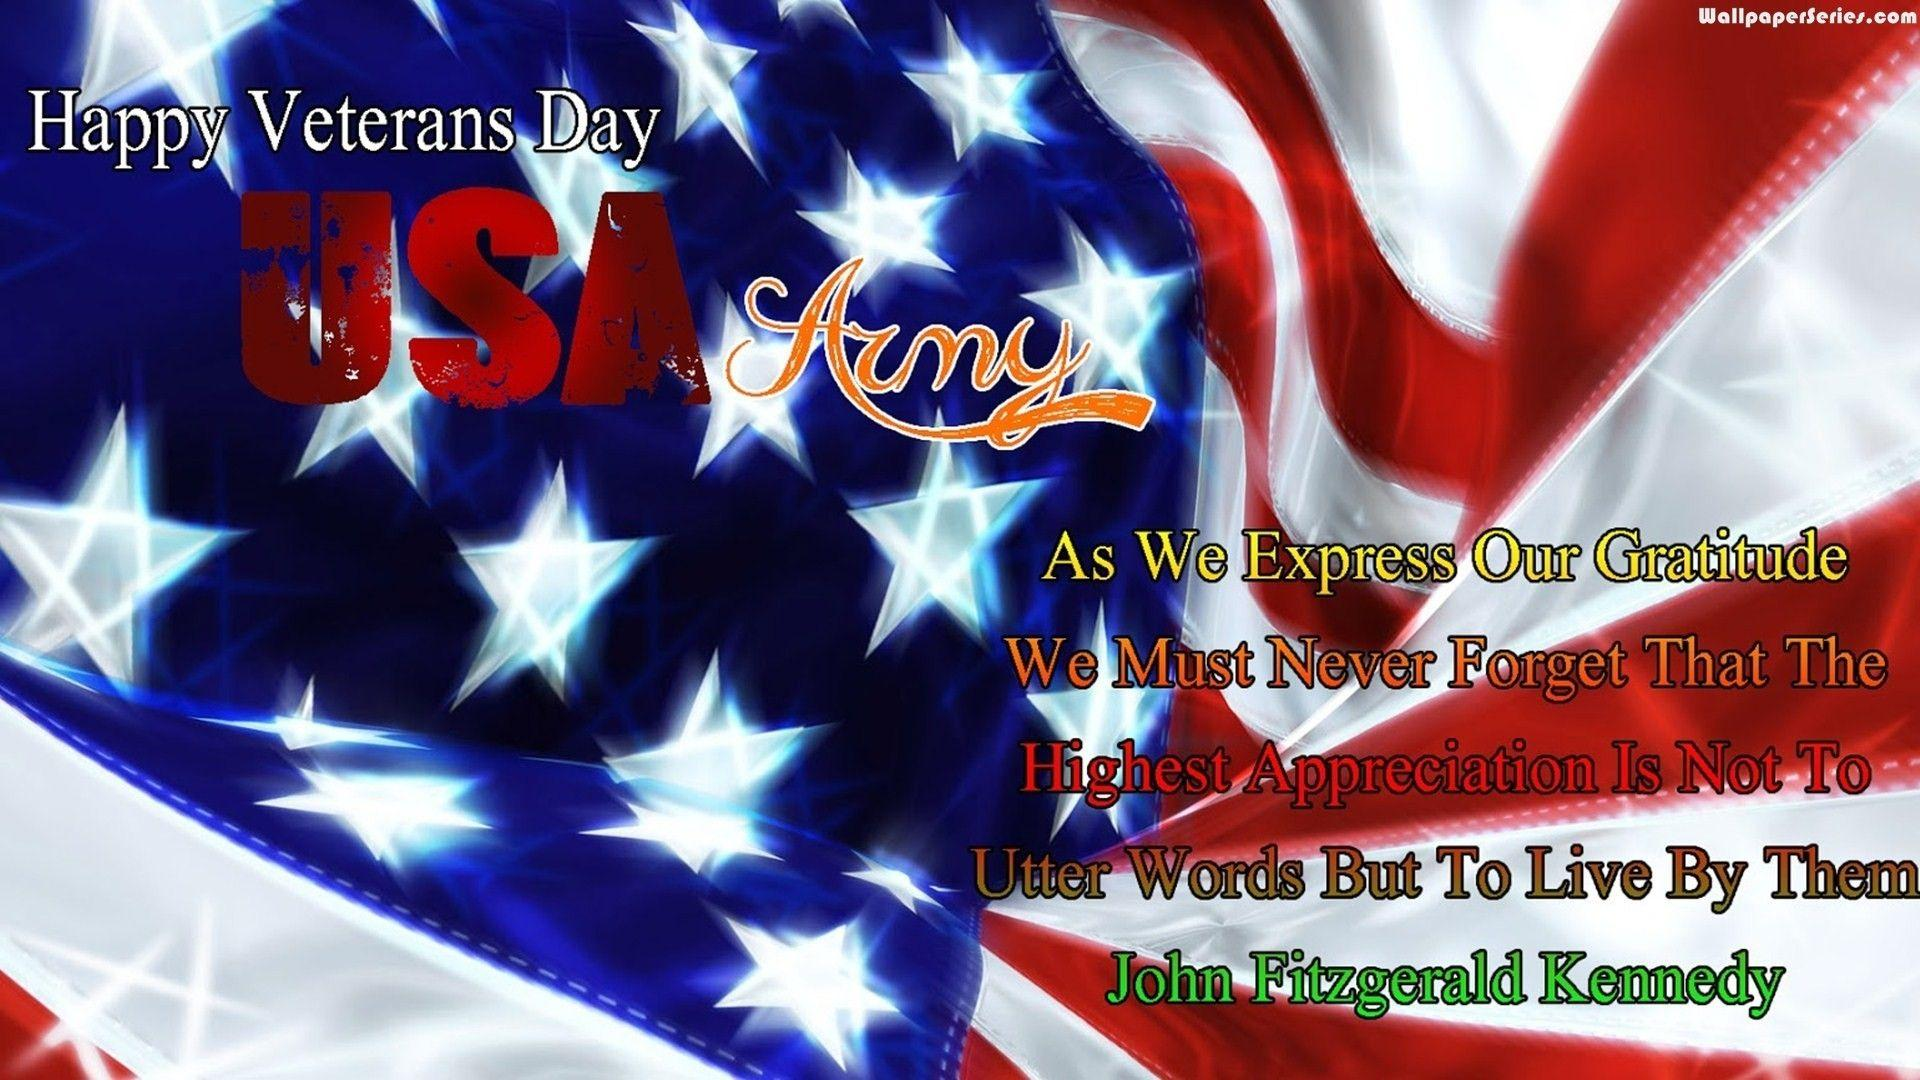 Veterans Day Wallpaper ·①